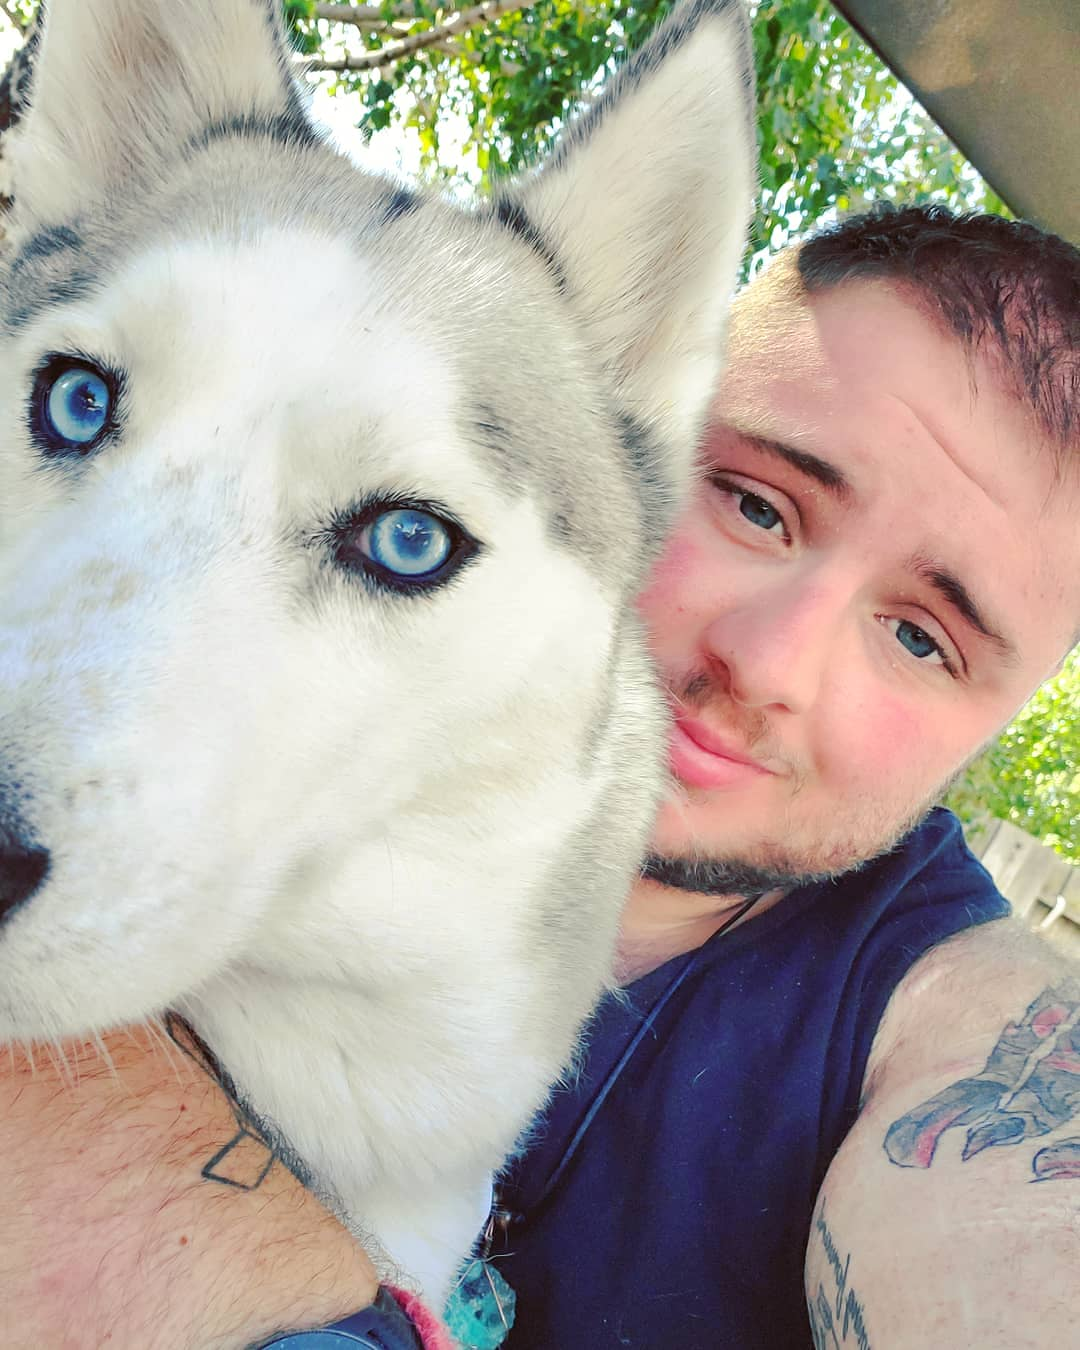 Maxx D'Elia with his dog Kagan. Photo provided.